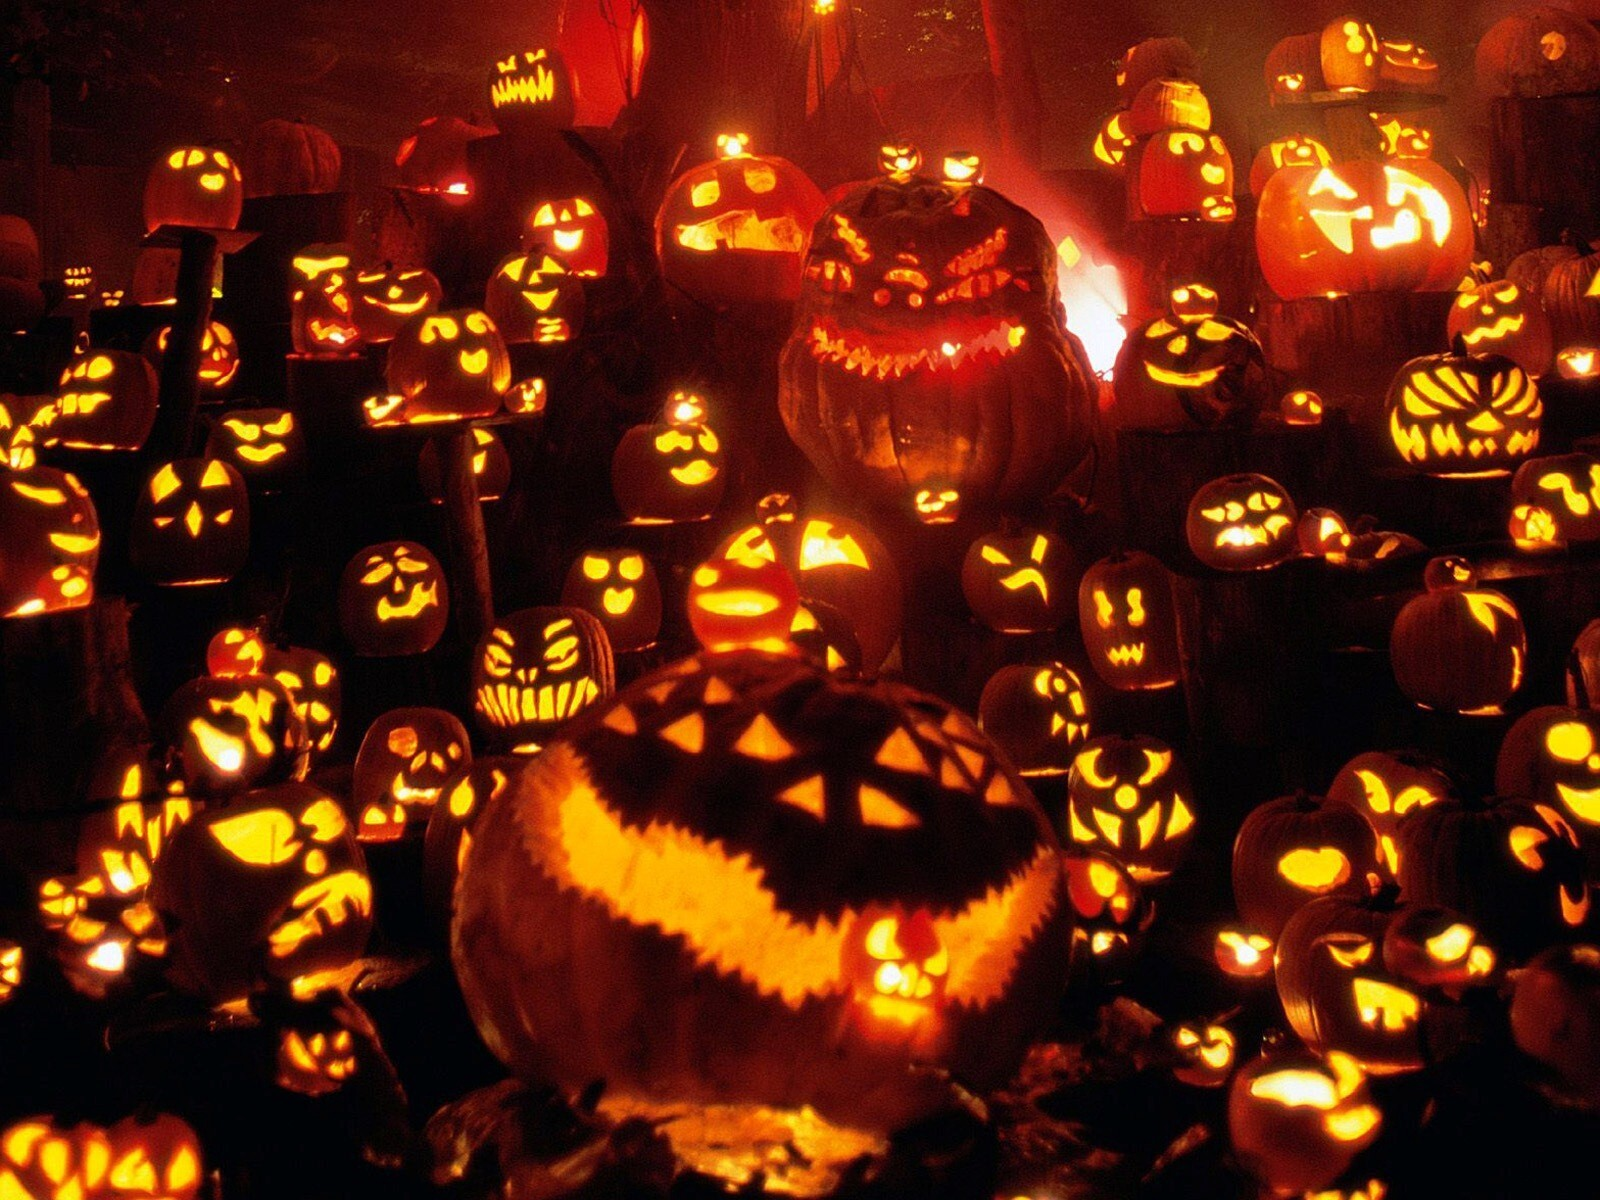 Halloween Pumpkin Wallpaper Hd.Halloween Pumpkins Festival Hd Wallpaper Hd Wallpapers